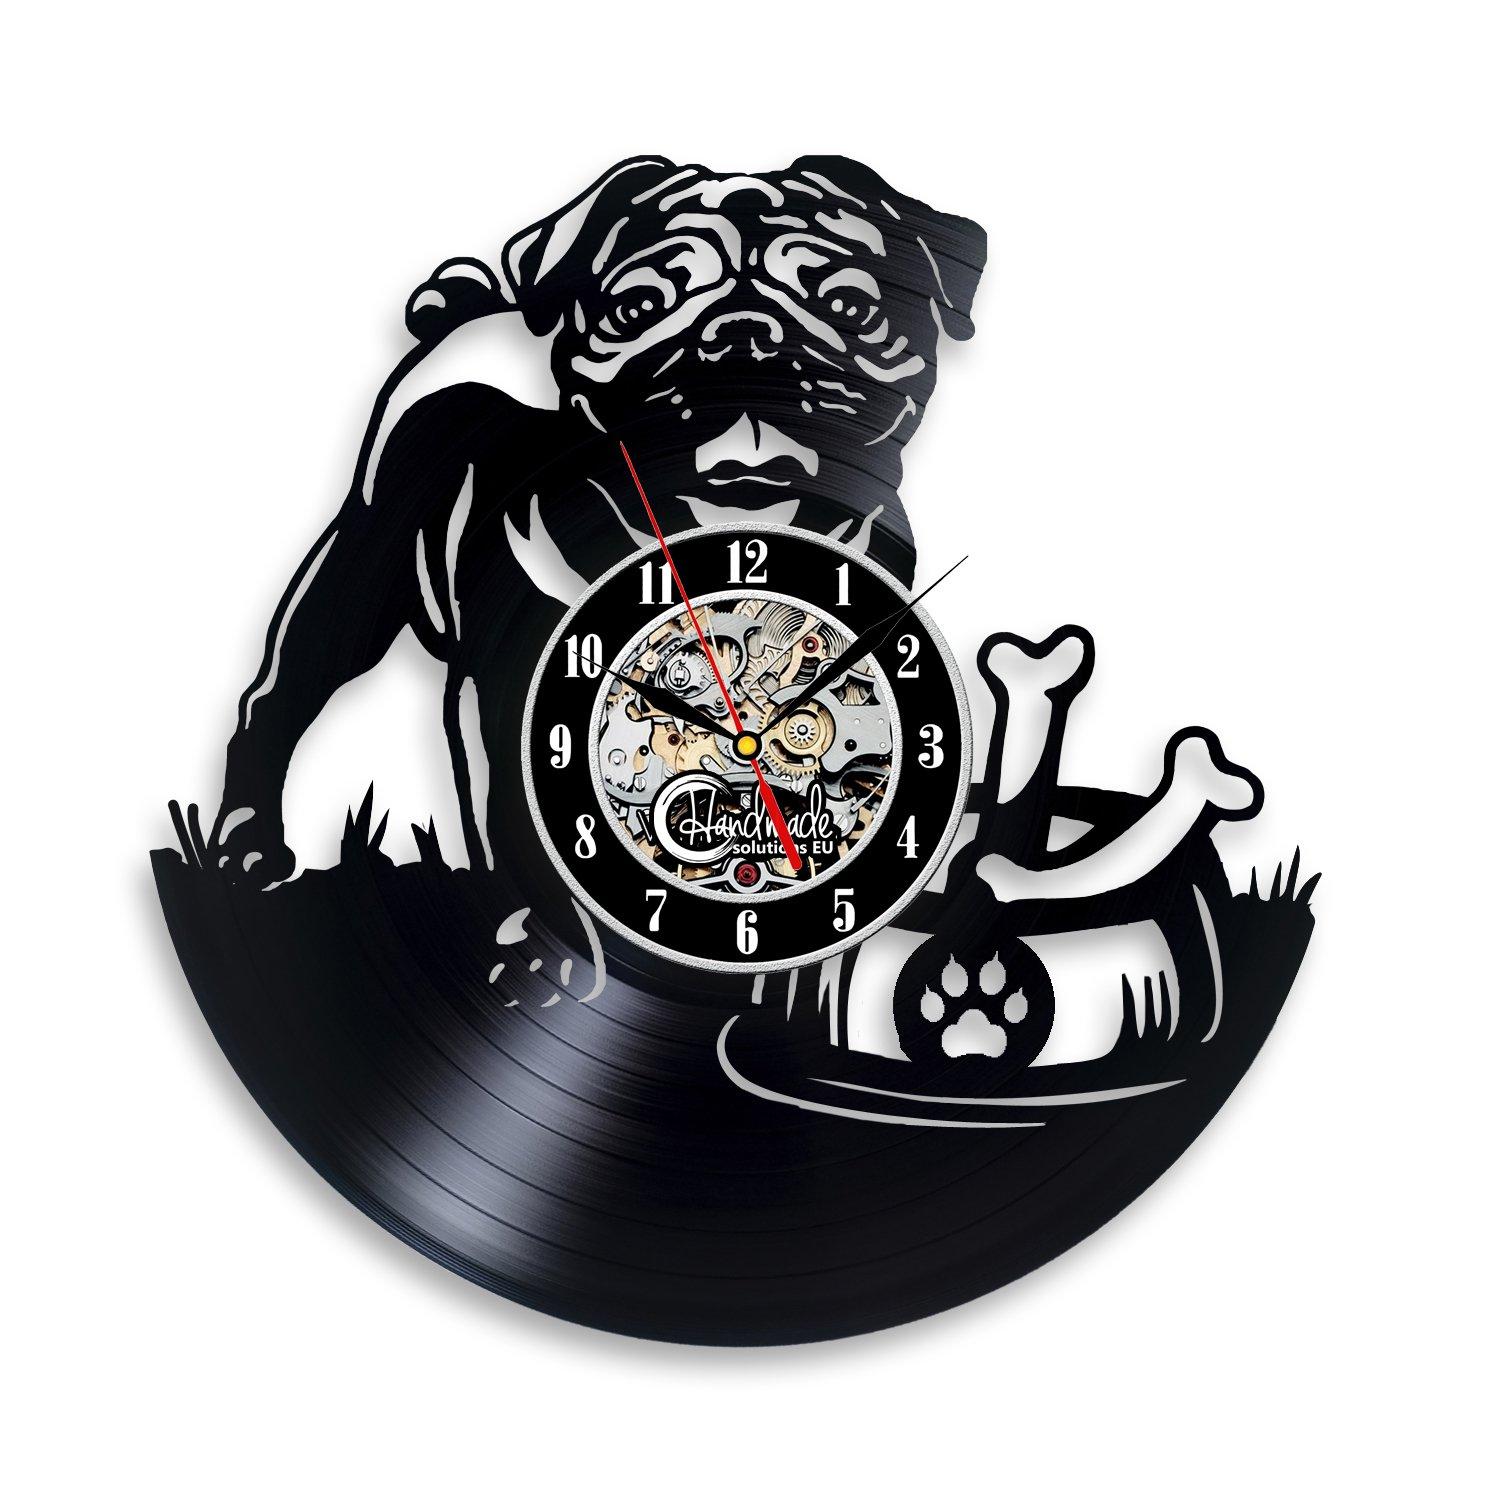 Amazon pug dog vinyl wall clock themed gifts kids bedroom decor amazon pug dog vinyl wall clock themed gifts kids bedroom decor ornaments art decorations for boys girls room presents accessories home kitchen buycottarizona Image collections